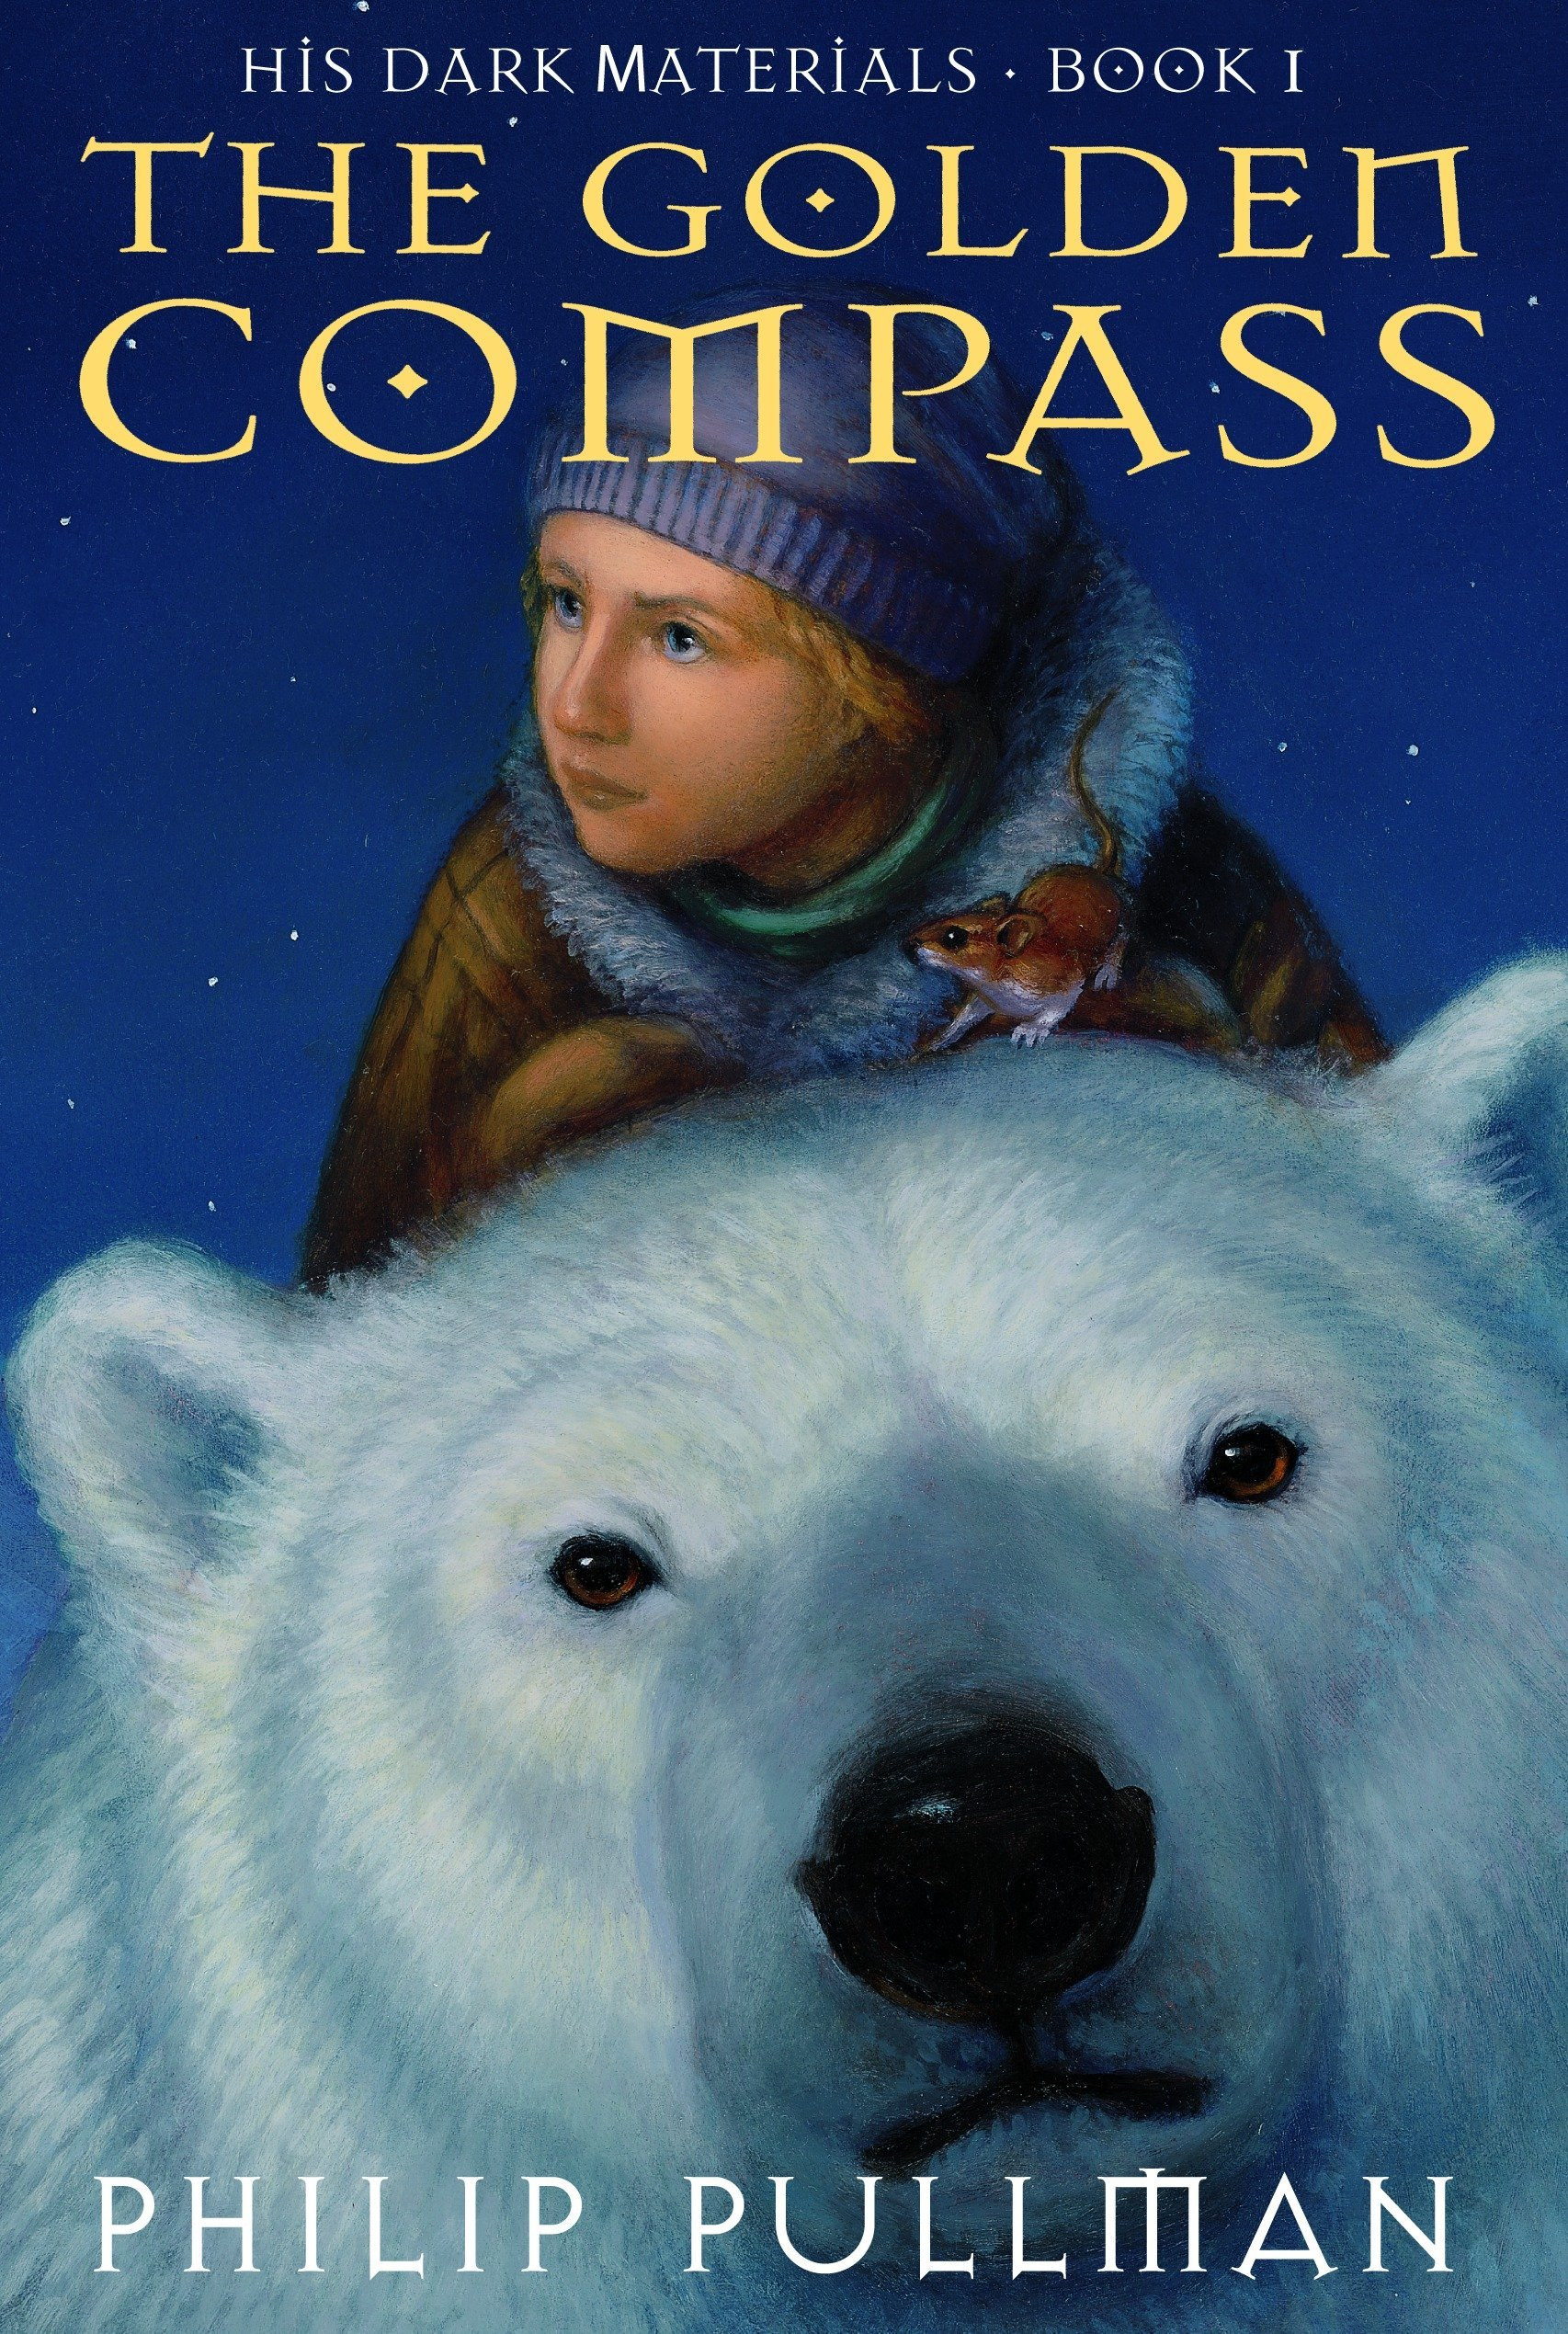 Amazon.com: The Golden Compass (His Dark Materials) (9780679879244):  Pullman, Philip: Books